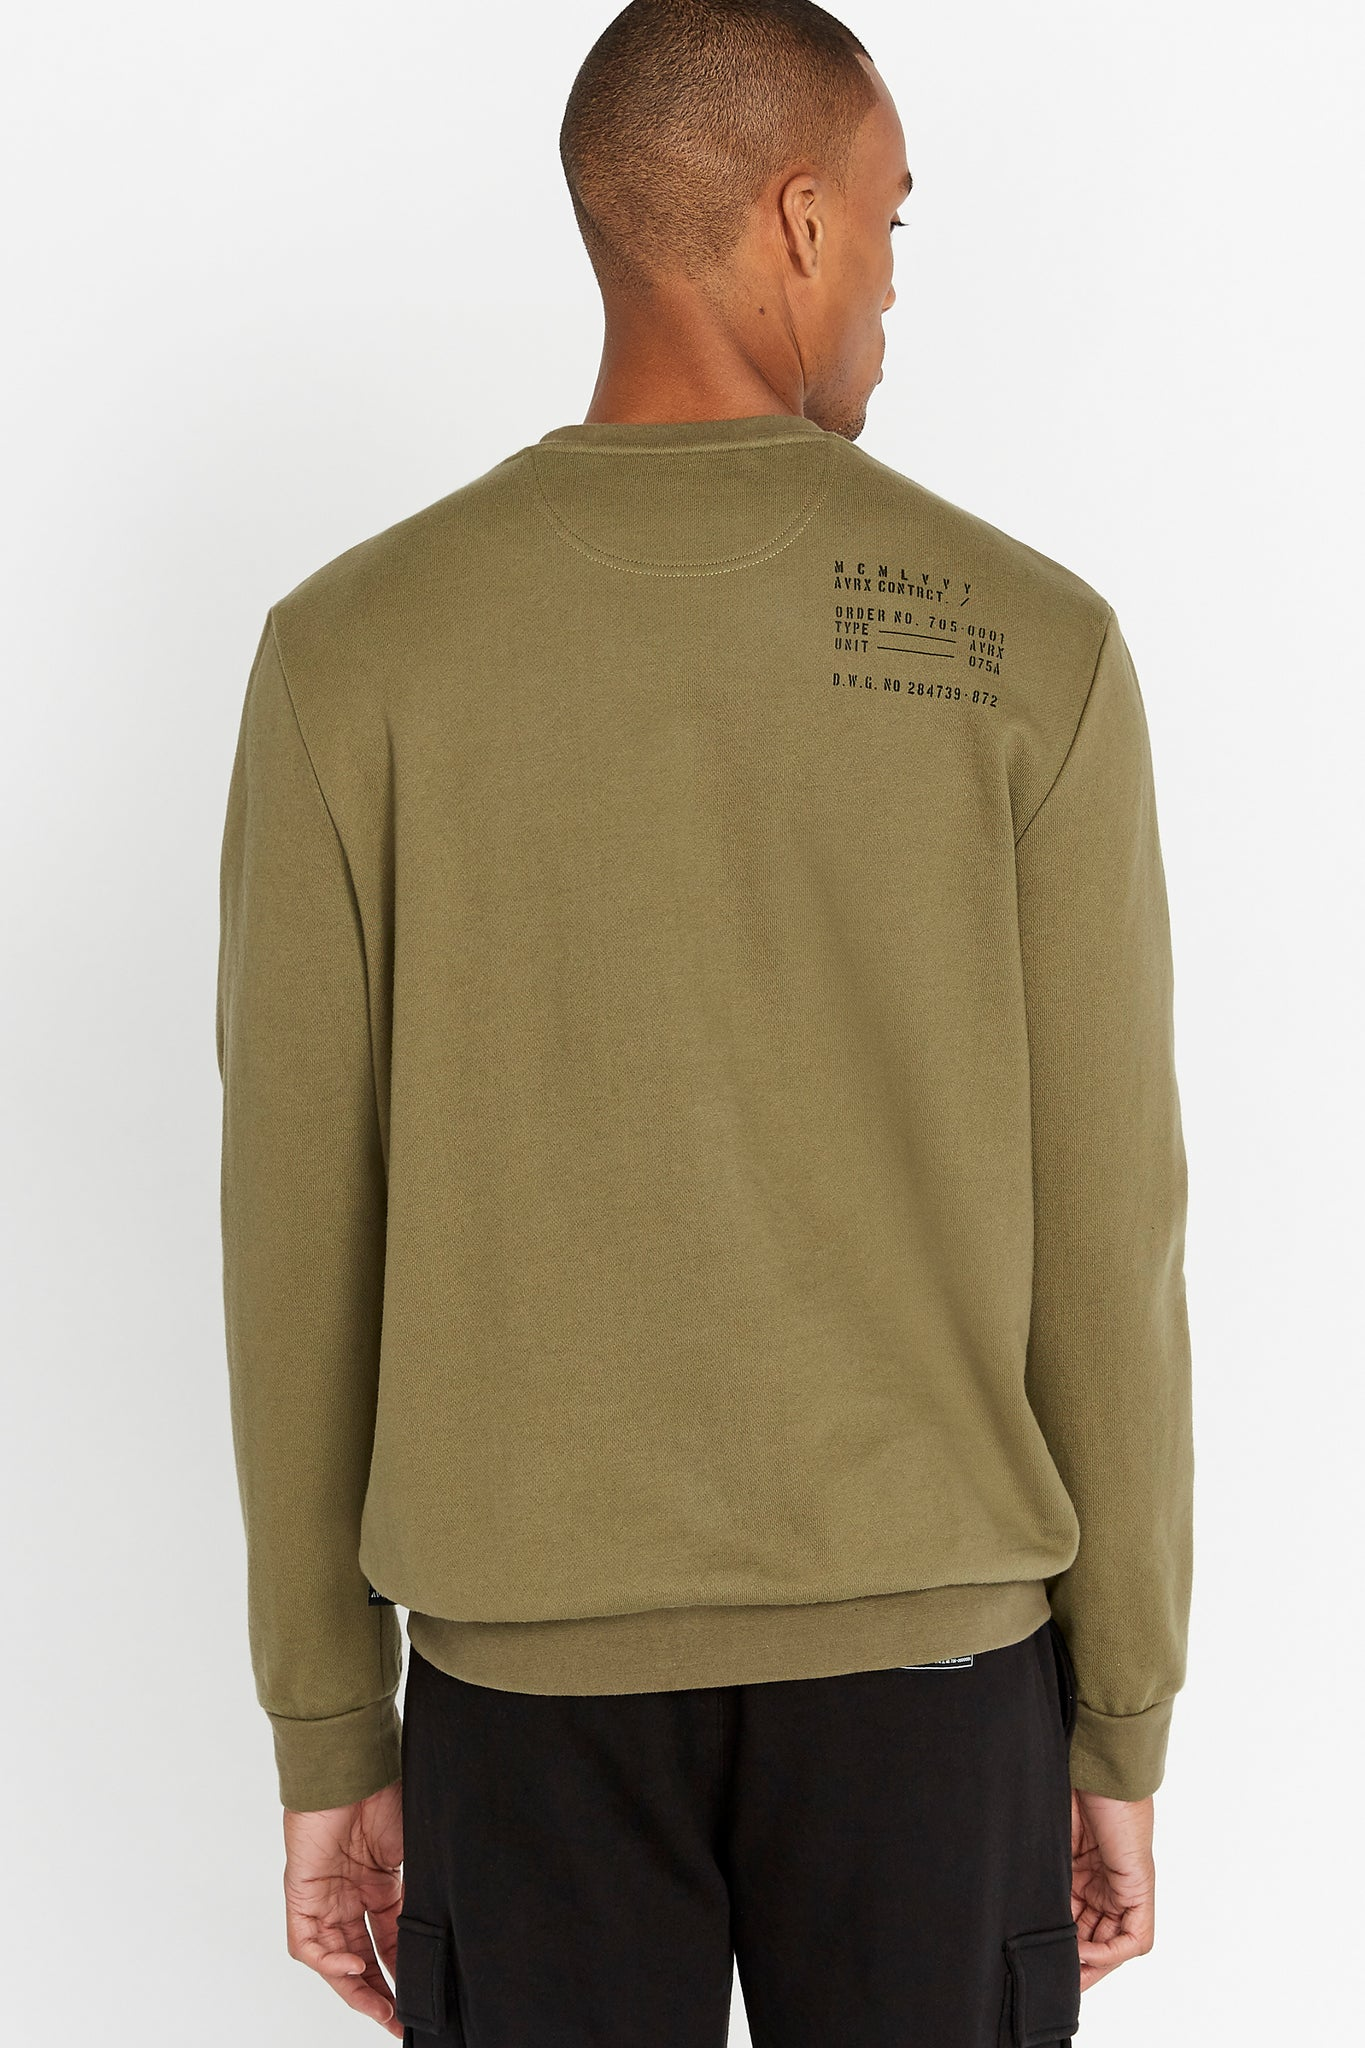 Back view of men wearing an olive long sleeve crew neck sweater with utility print on the back shoulder